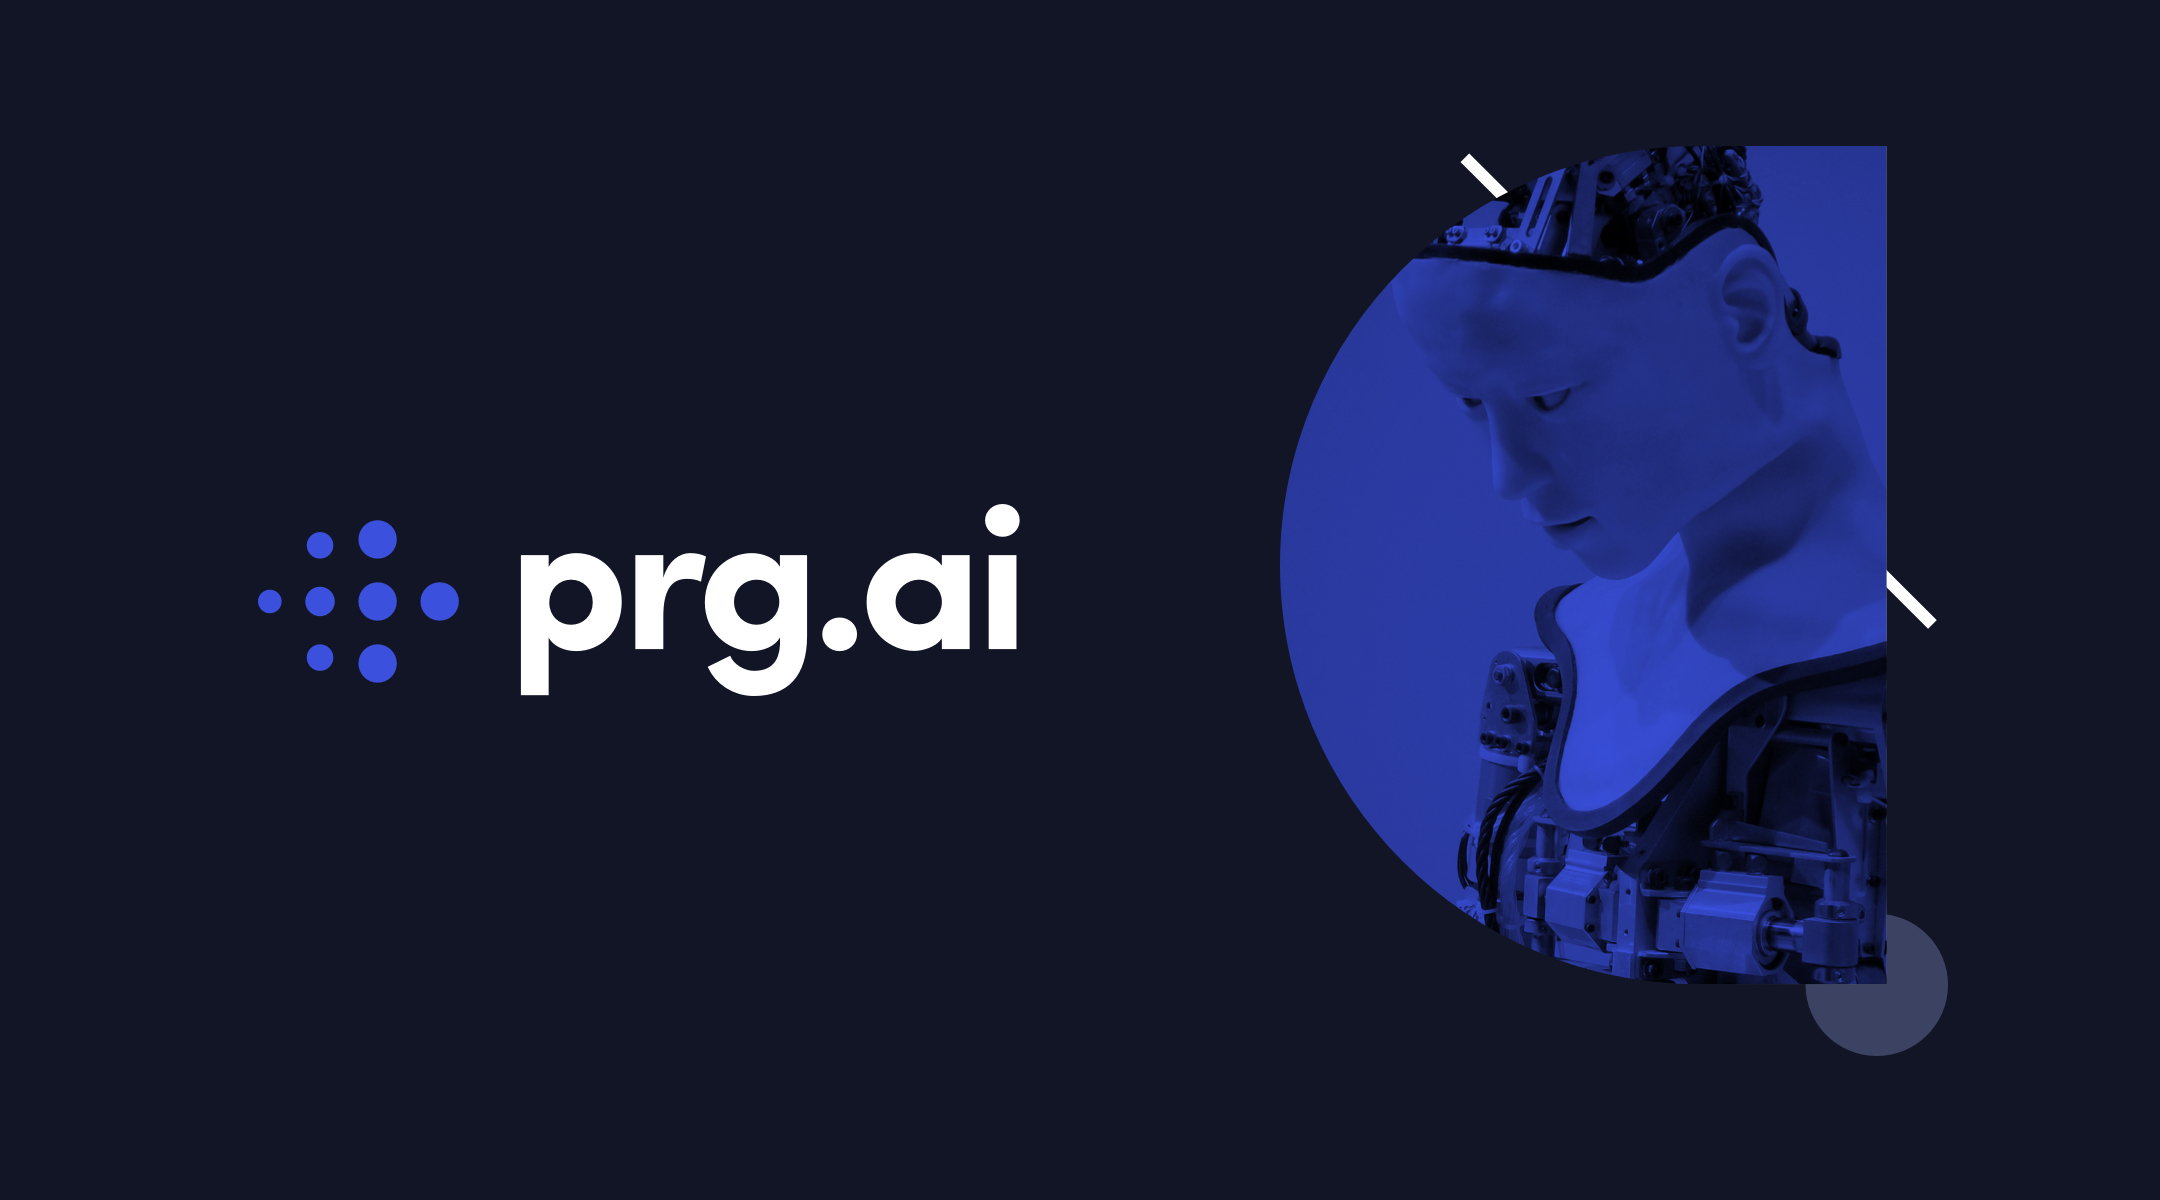 On May 16, the activities of the prg.ai initiative were inaugurated